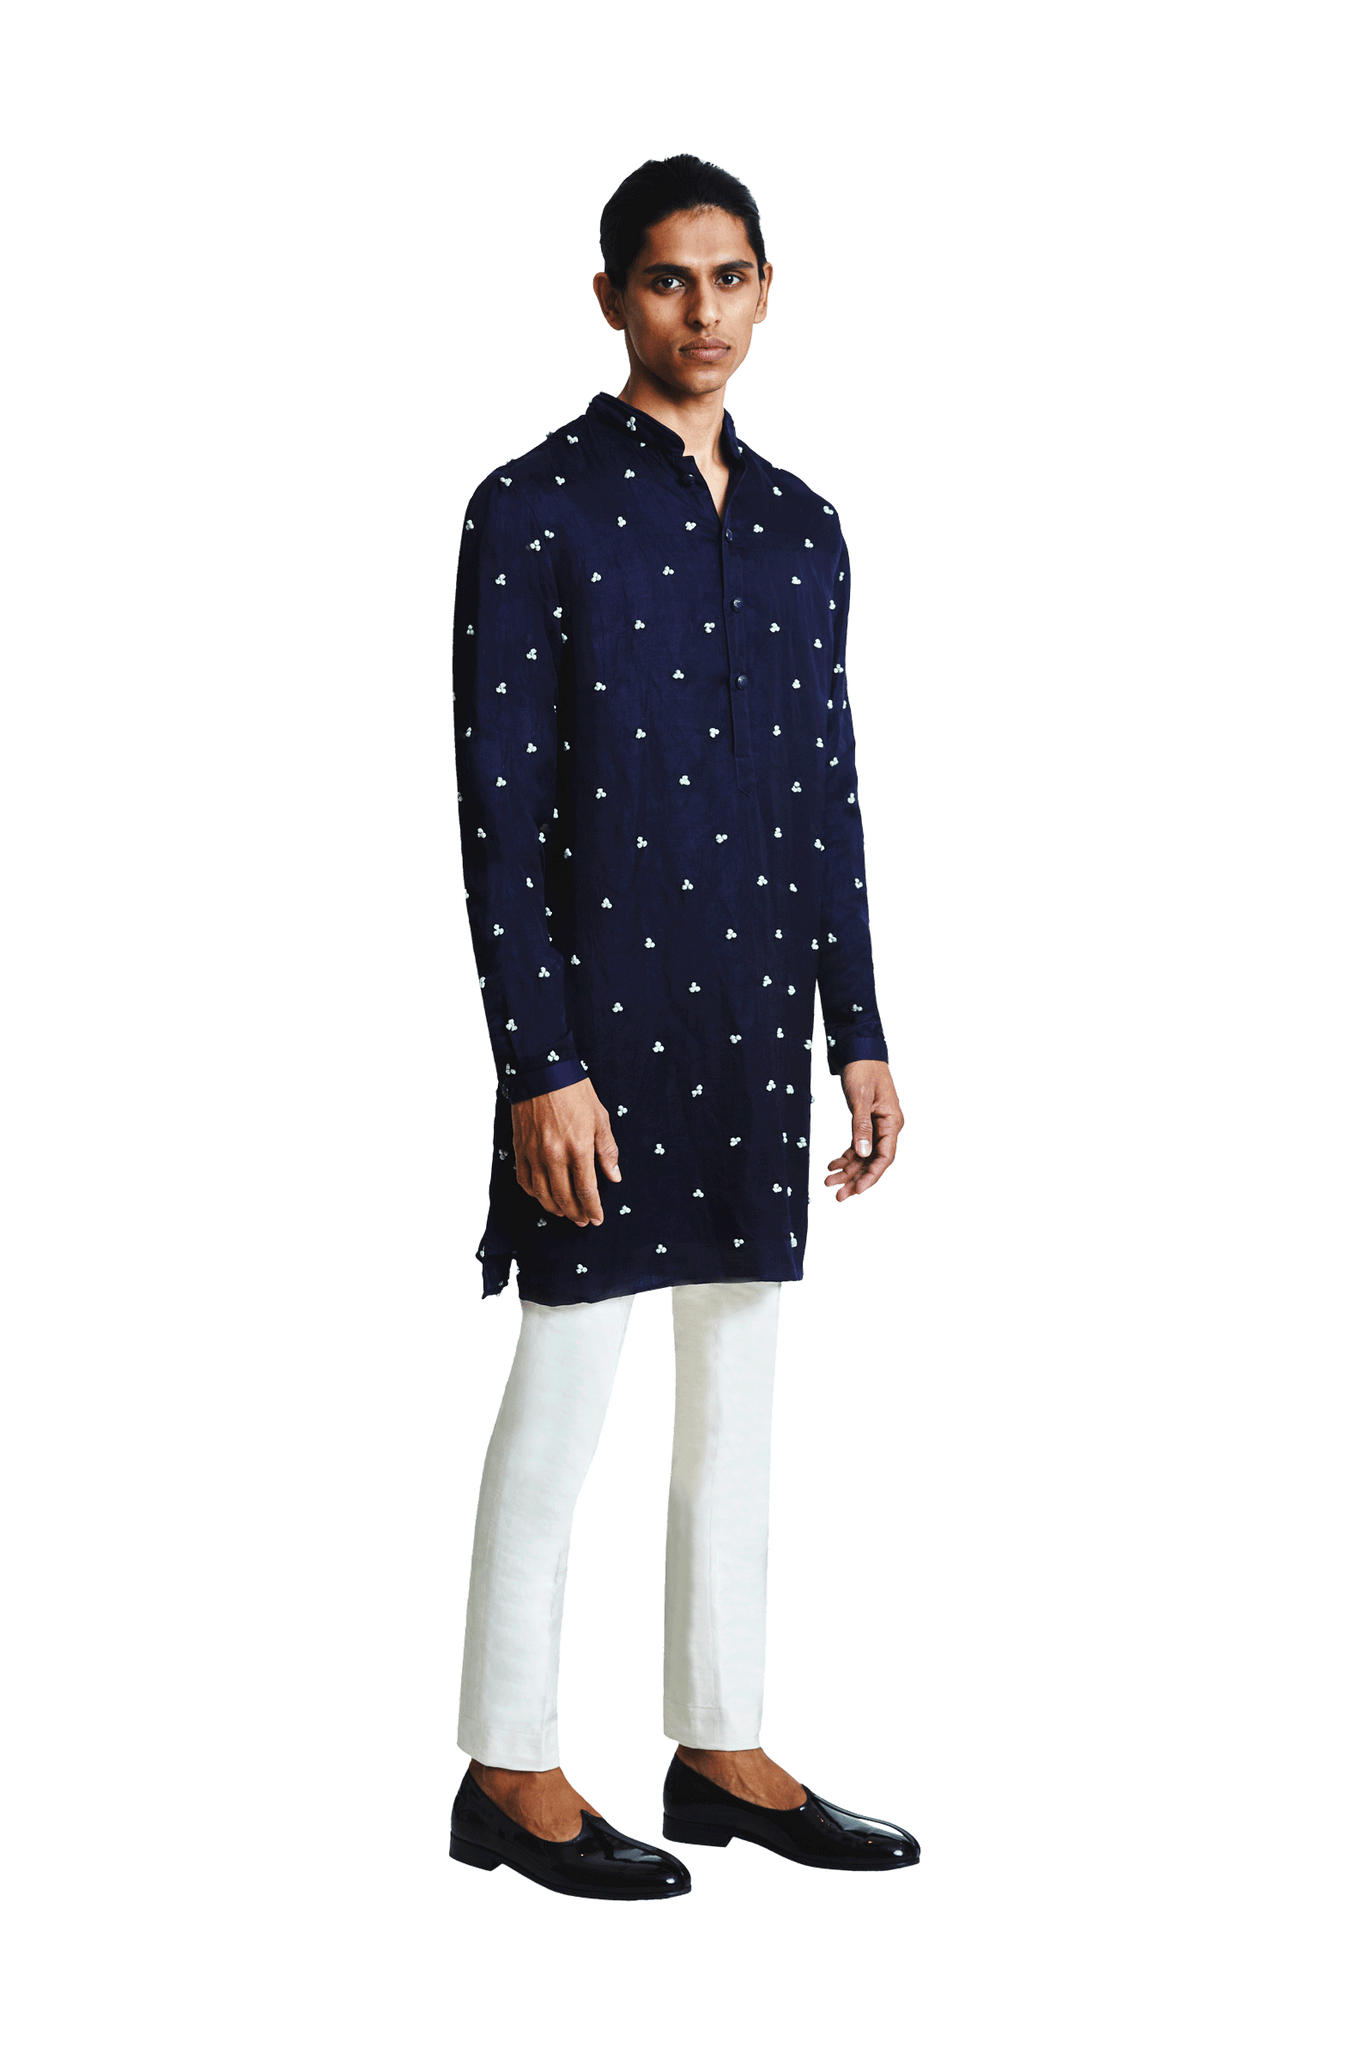 BIG BRAIL KNOTTED KURTA